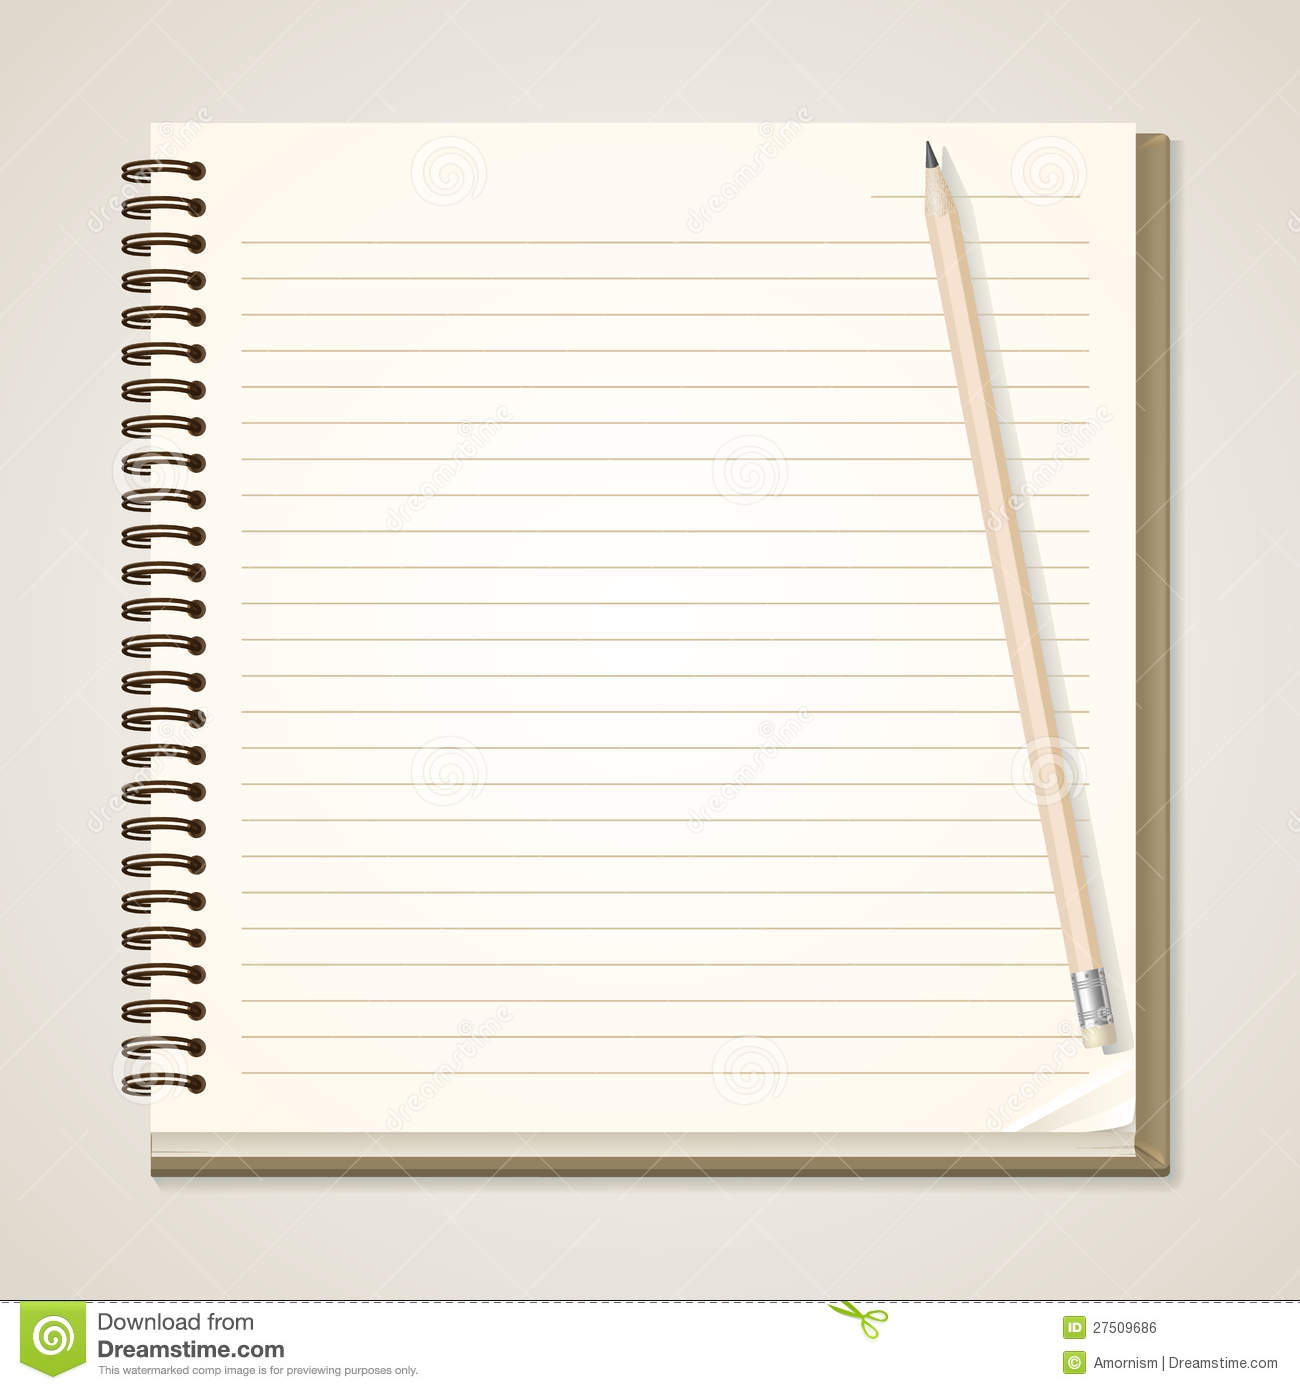 Paper Notebook And Pencil Royalty Free Stock Image - Image ...